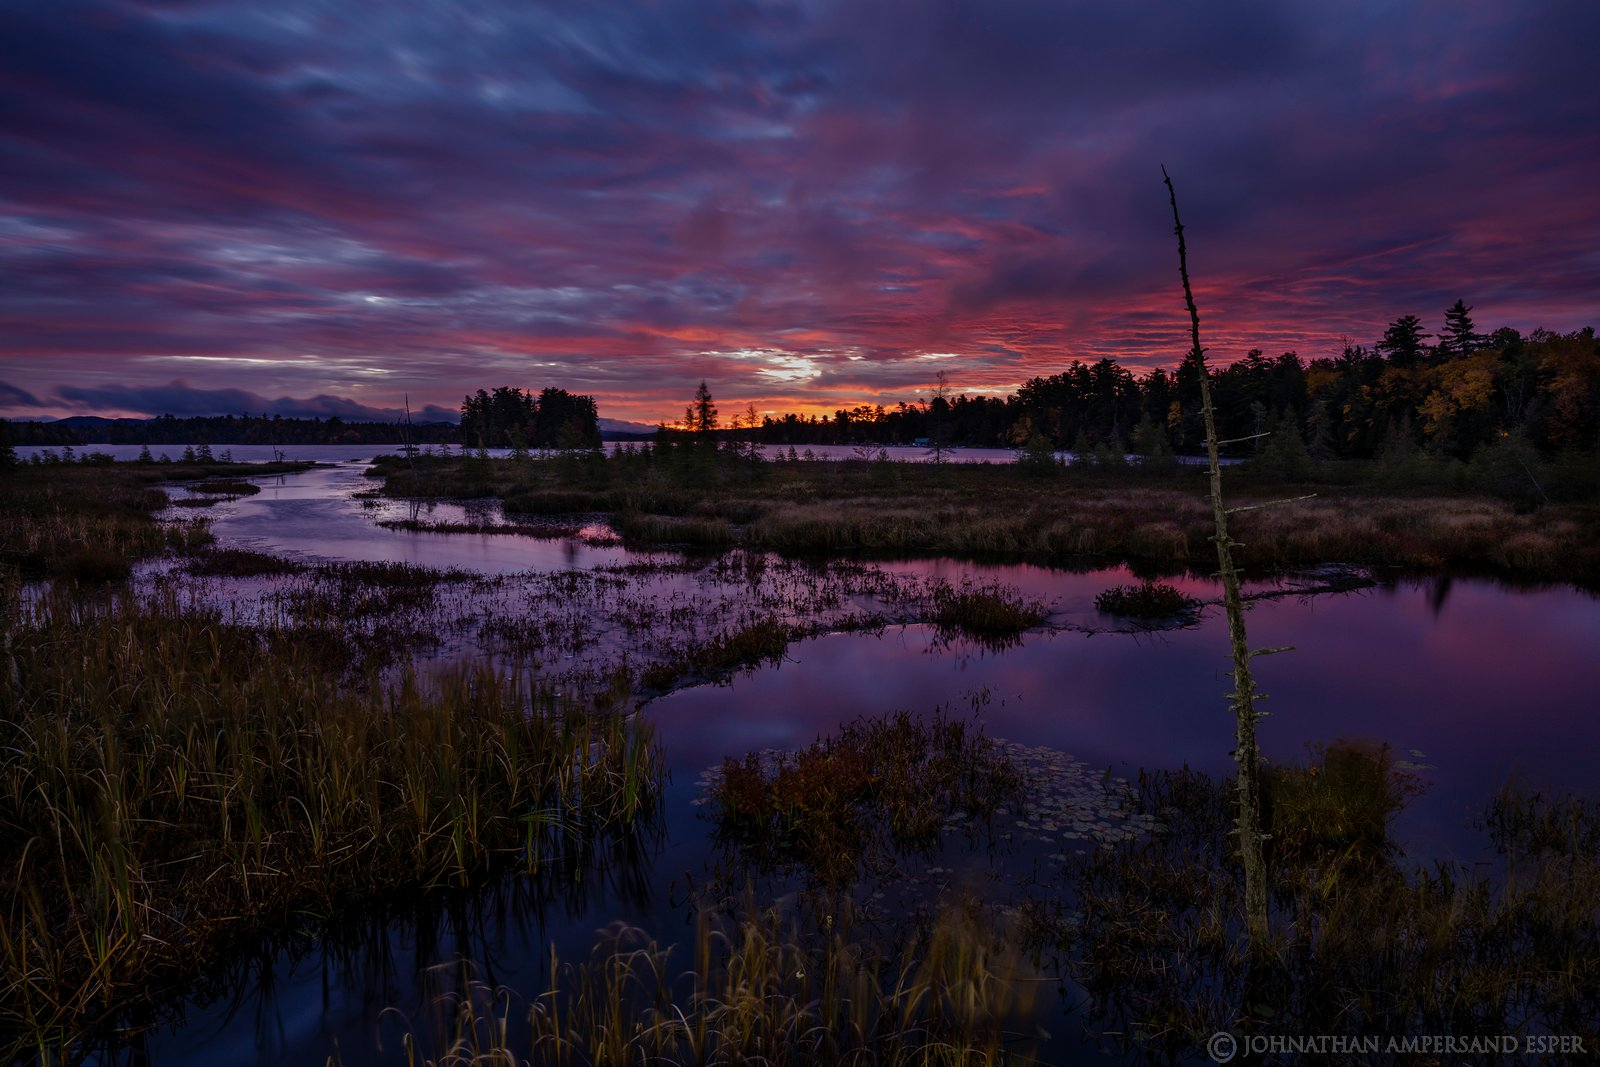 Raquette Lake,Browns Tract Inlet,2019,Muench Workshop,sunrise,predawn,purple,, photo